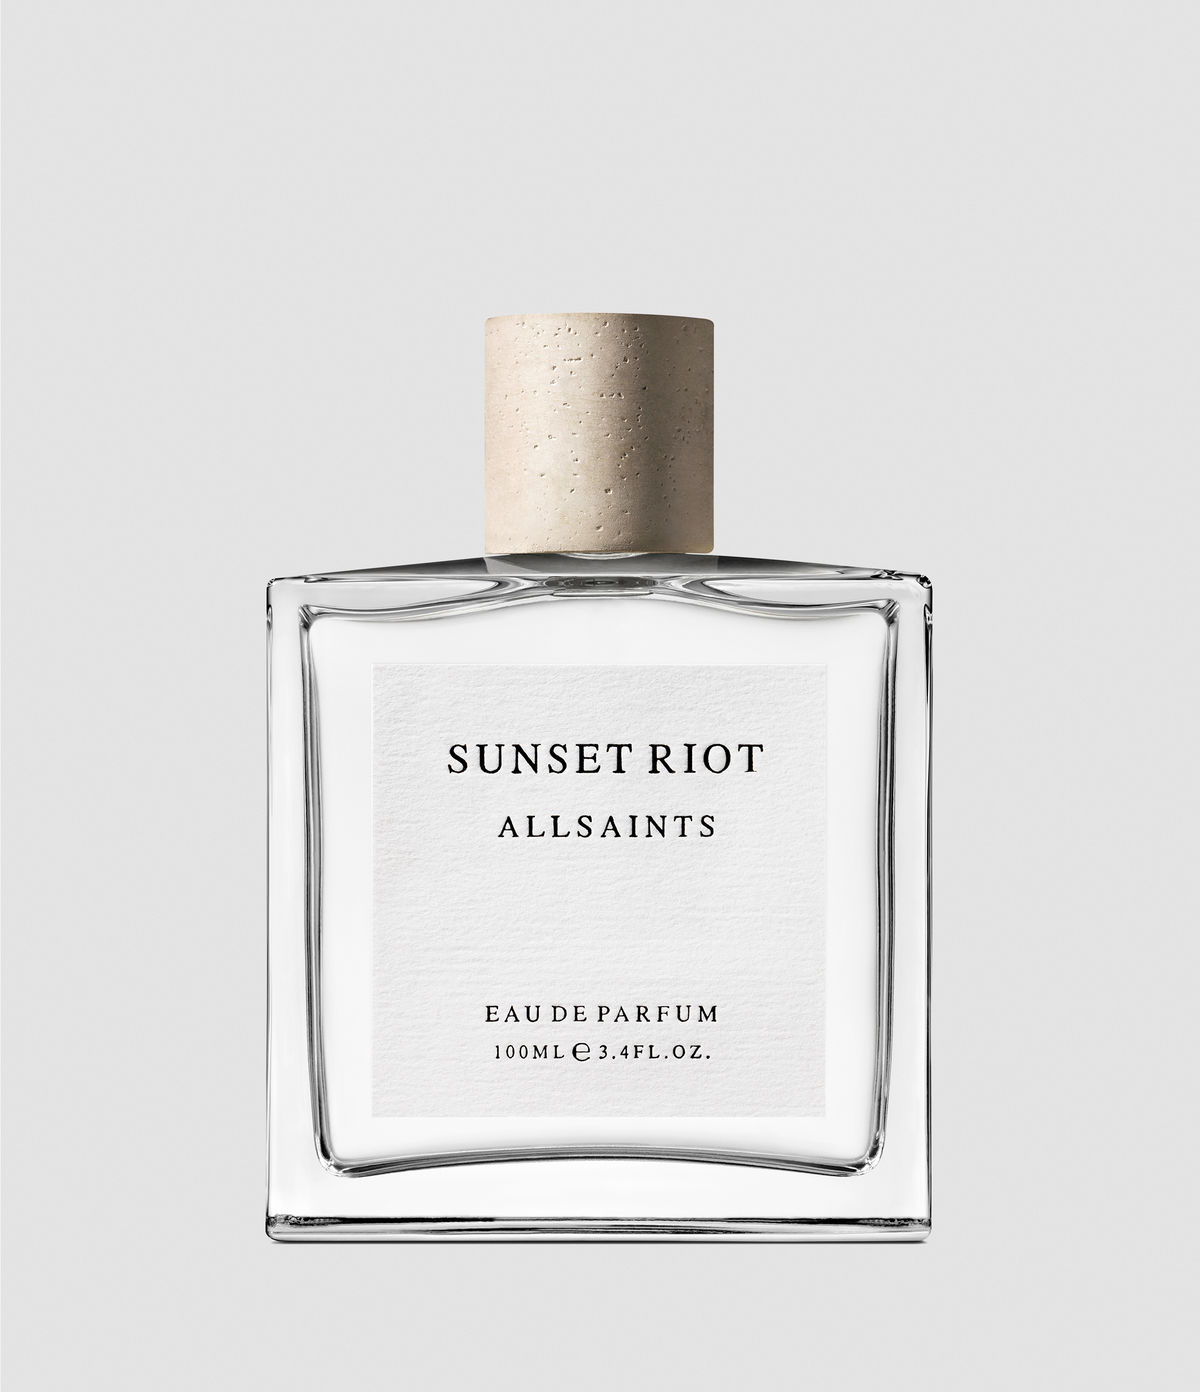 AllSaints Sunset Riot 3.4OZ / 100ML Eau De Parfum Spray